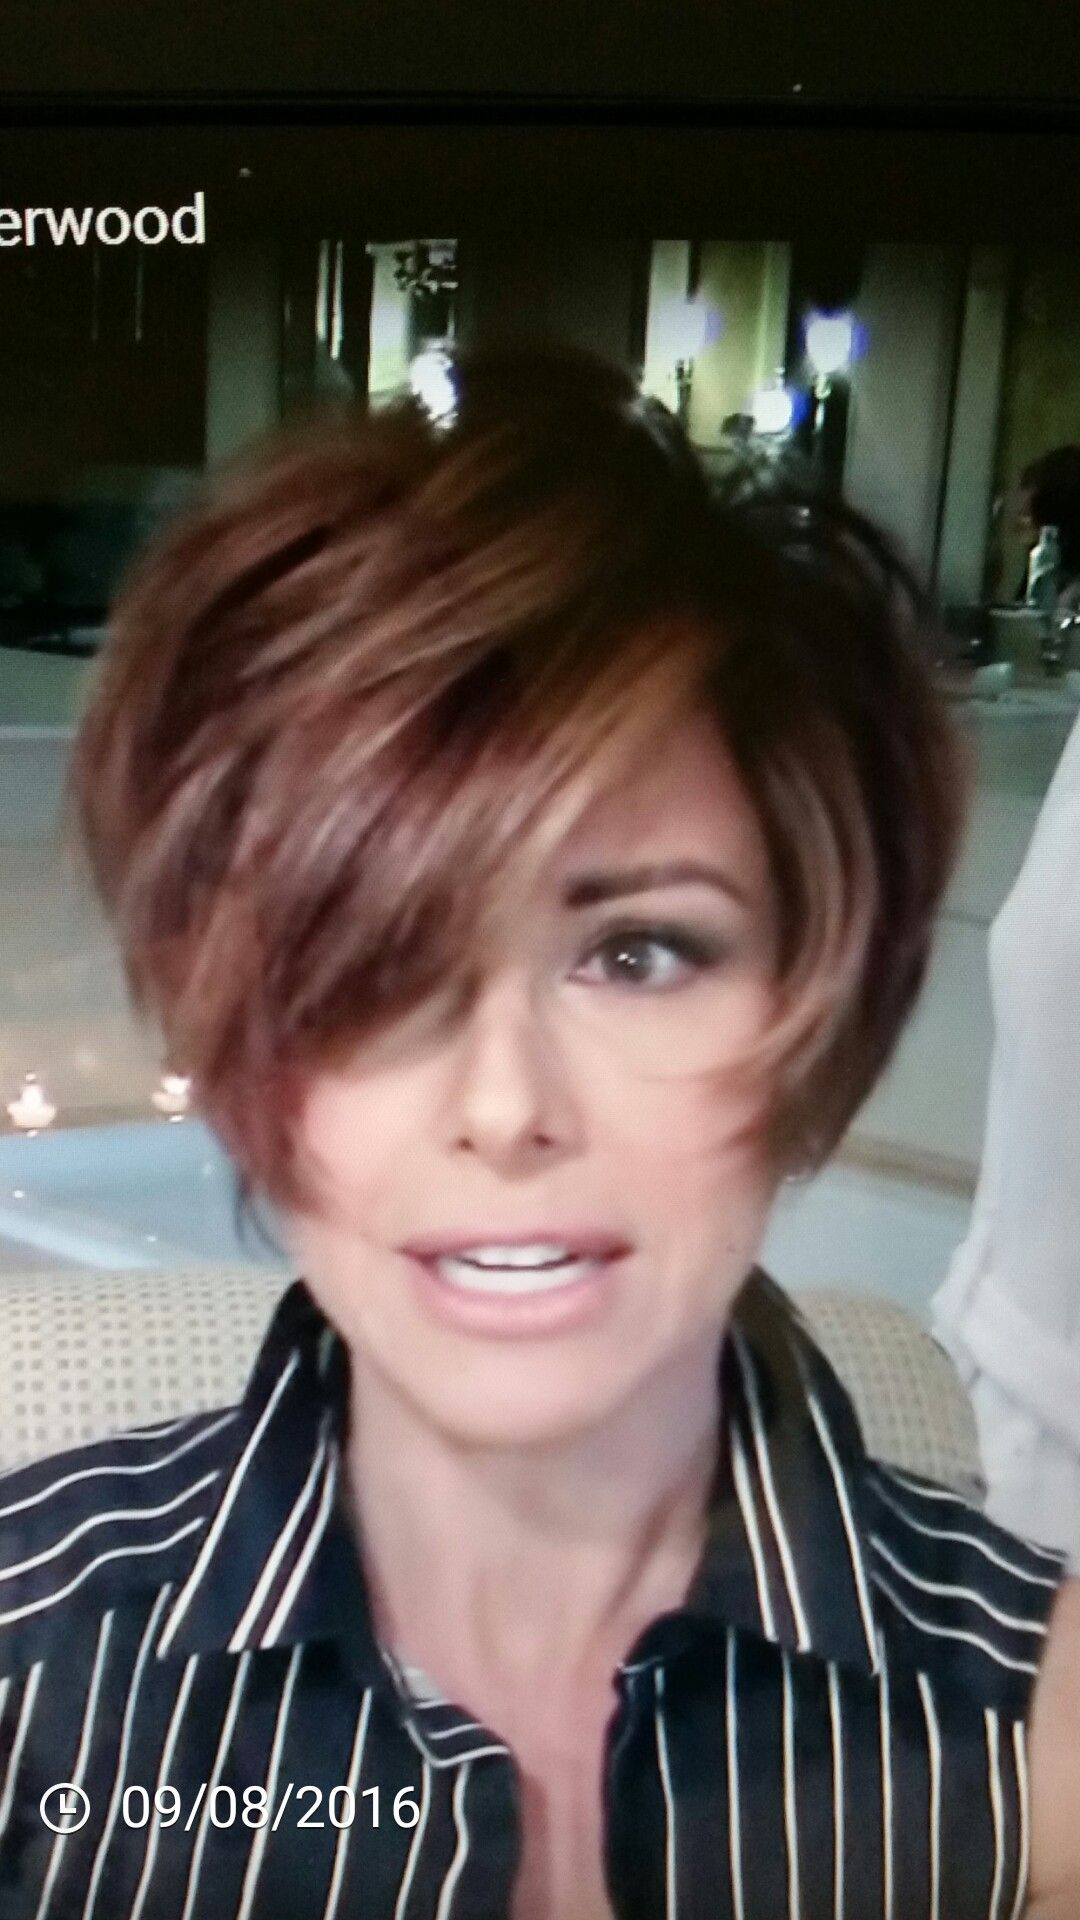 Swell Short Bob Back Hair Pinterest Bobs Love The And Shorts Short Hairstyles For Black Women Fulllsitofus